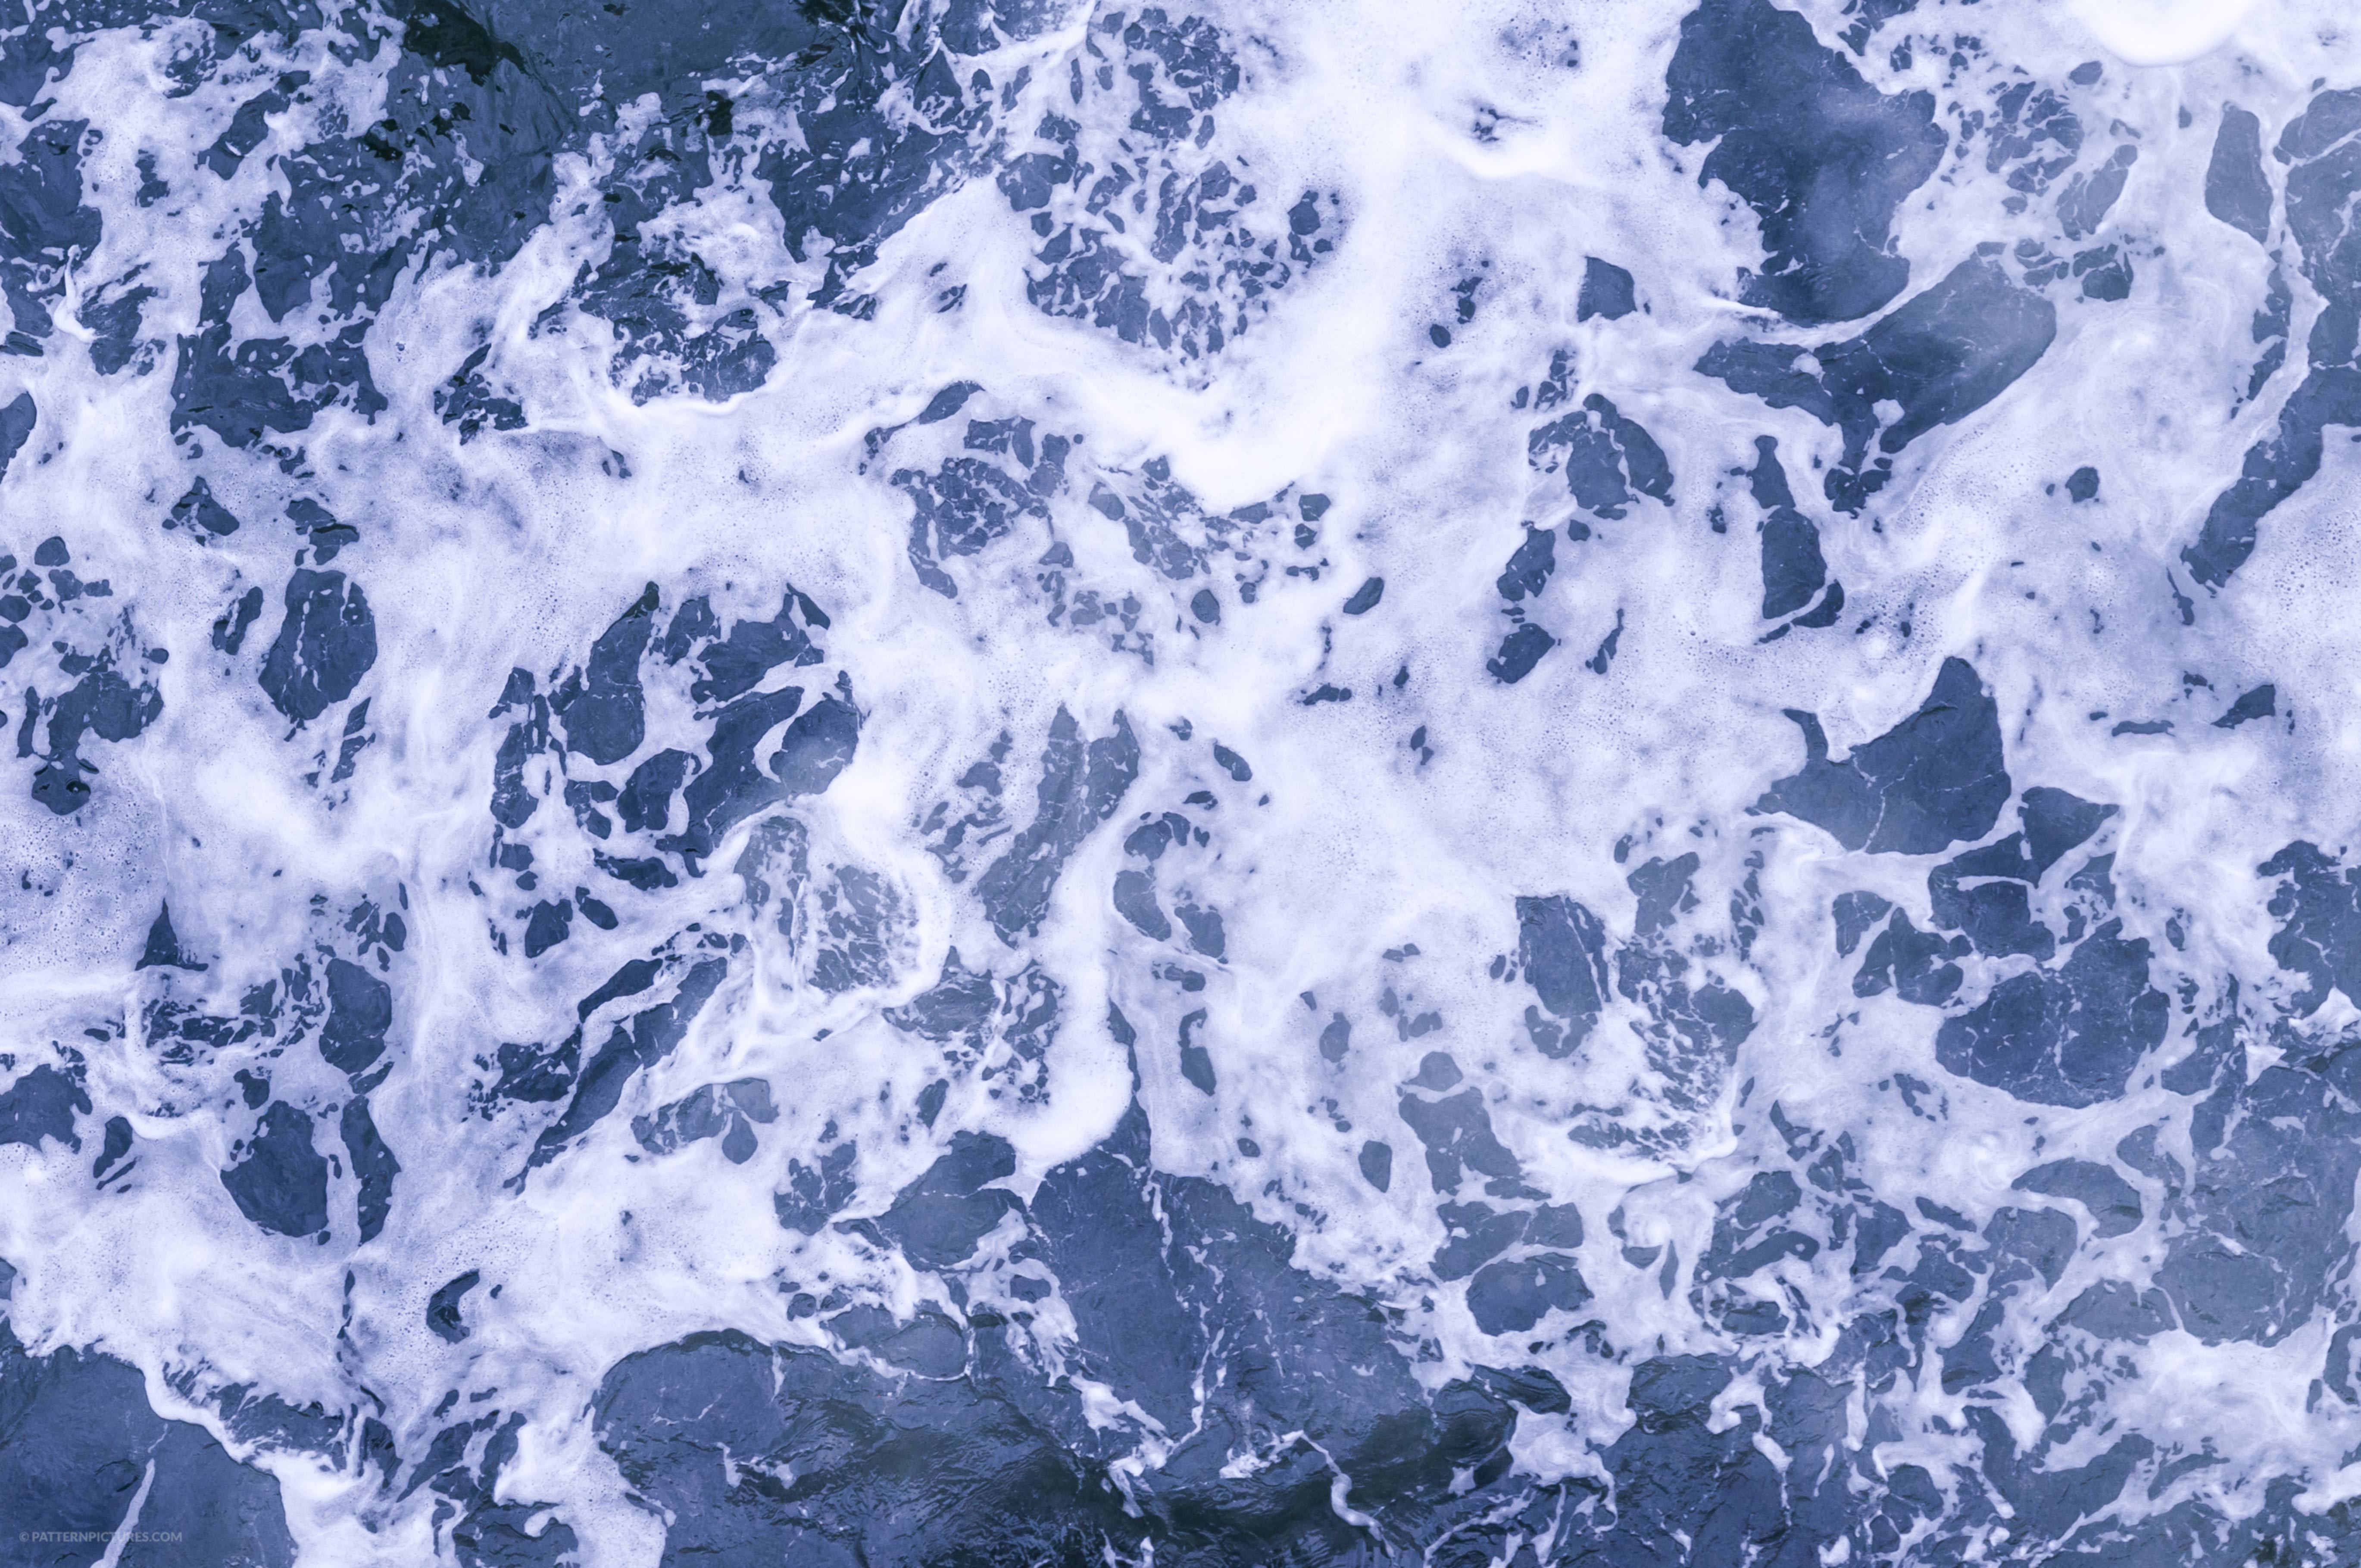 Marble pattern ocean texture from above